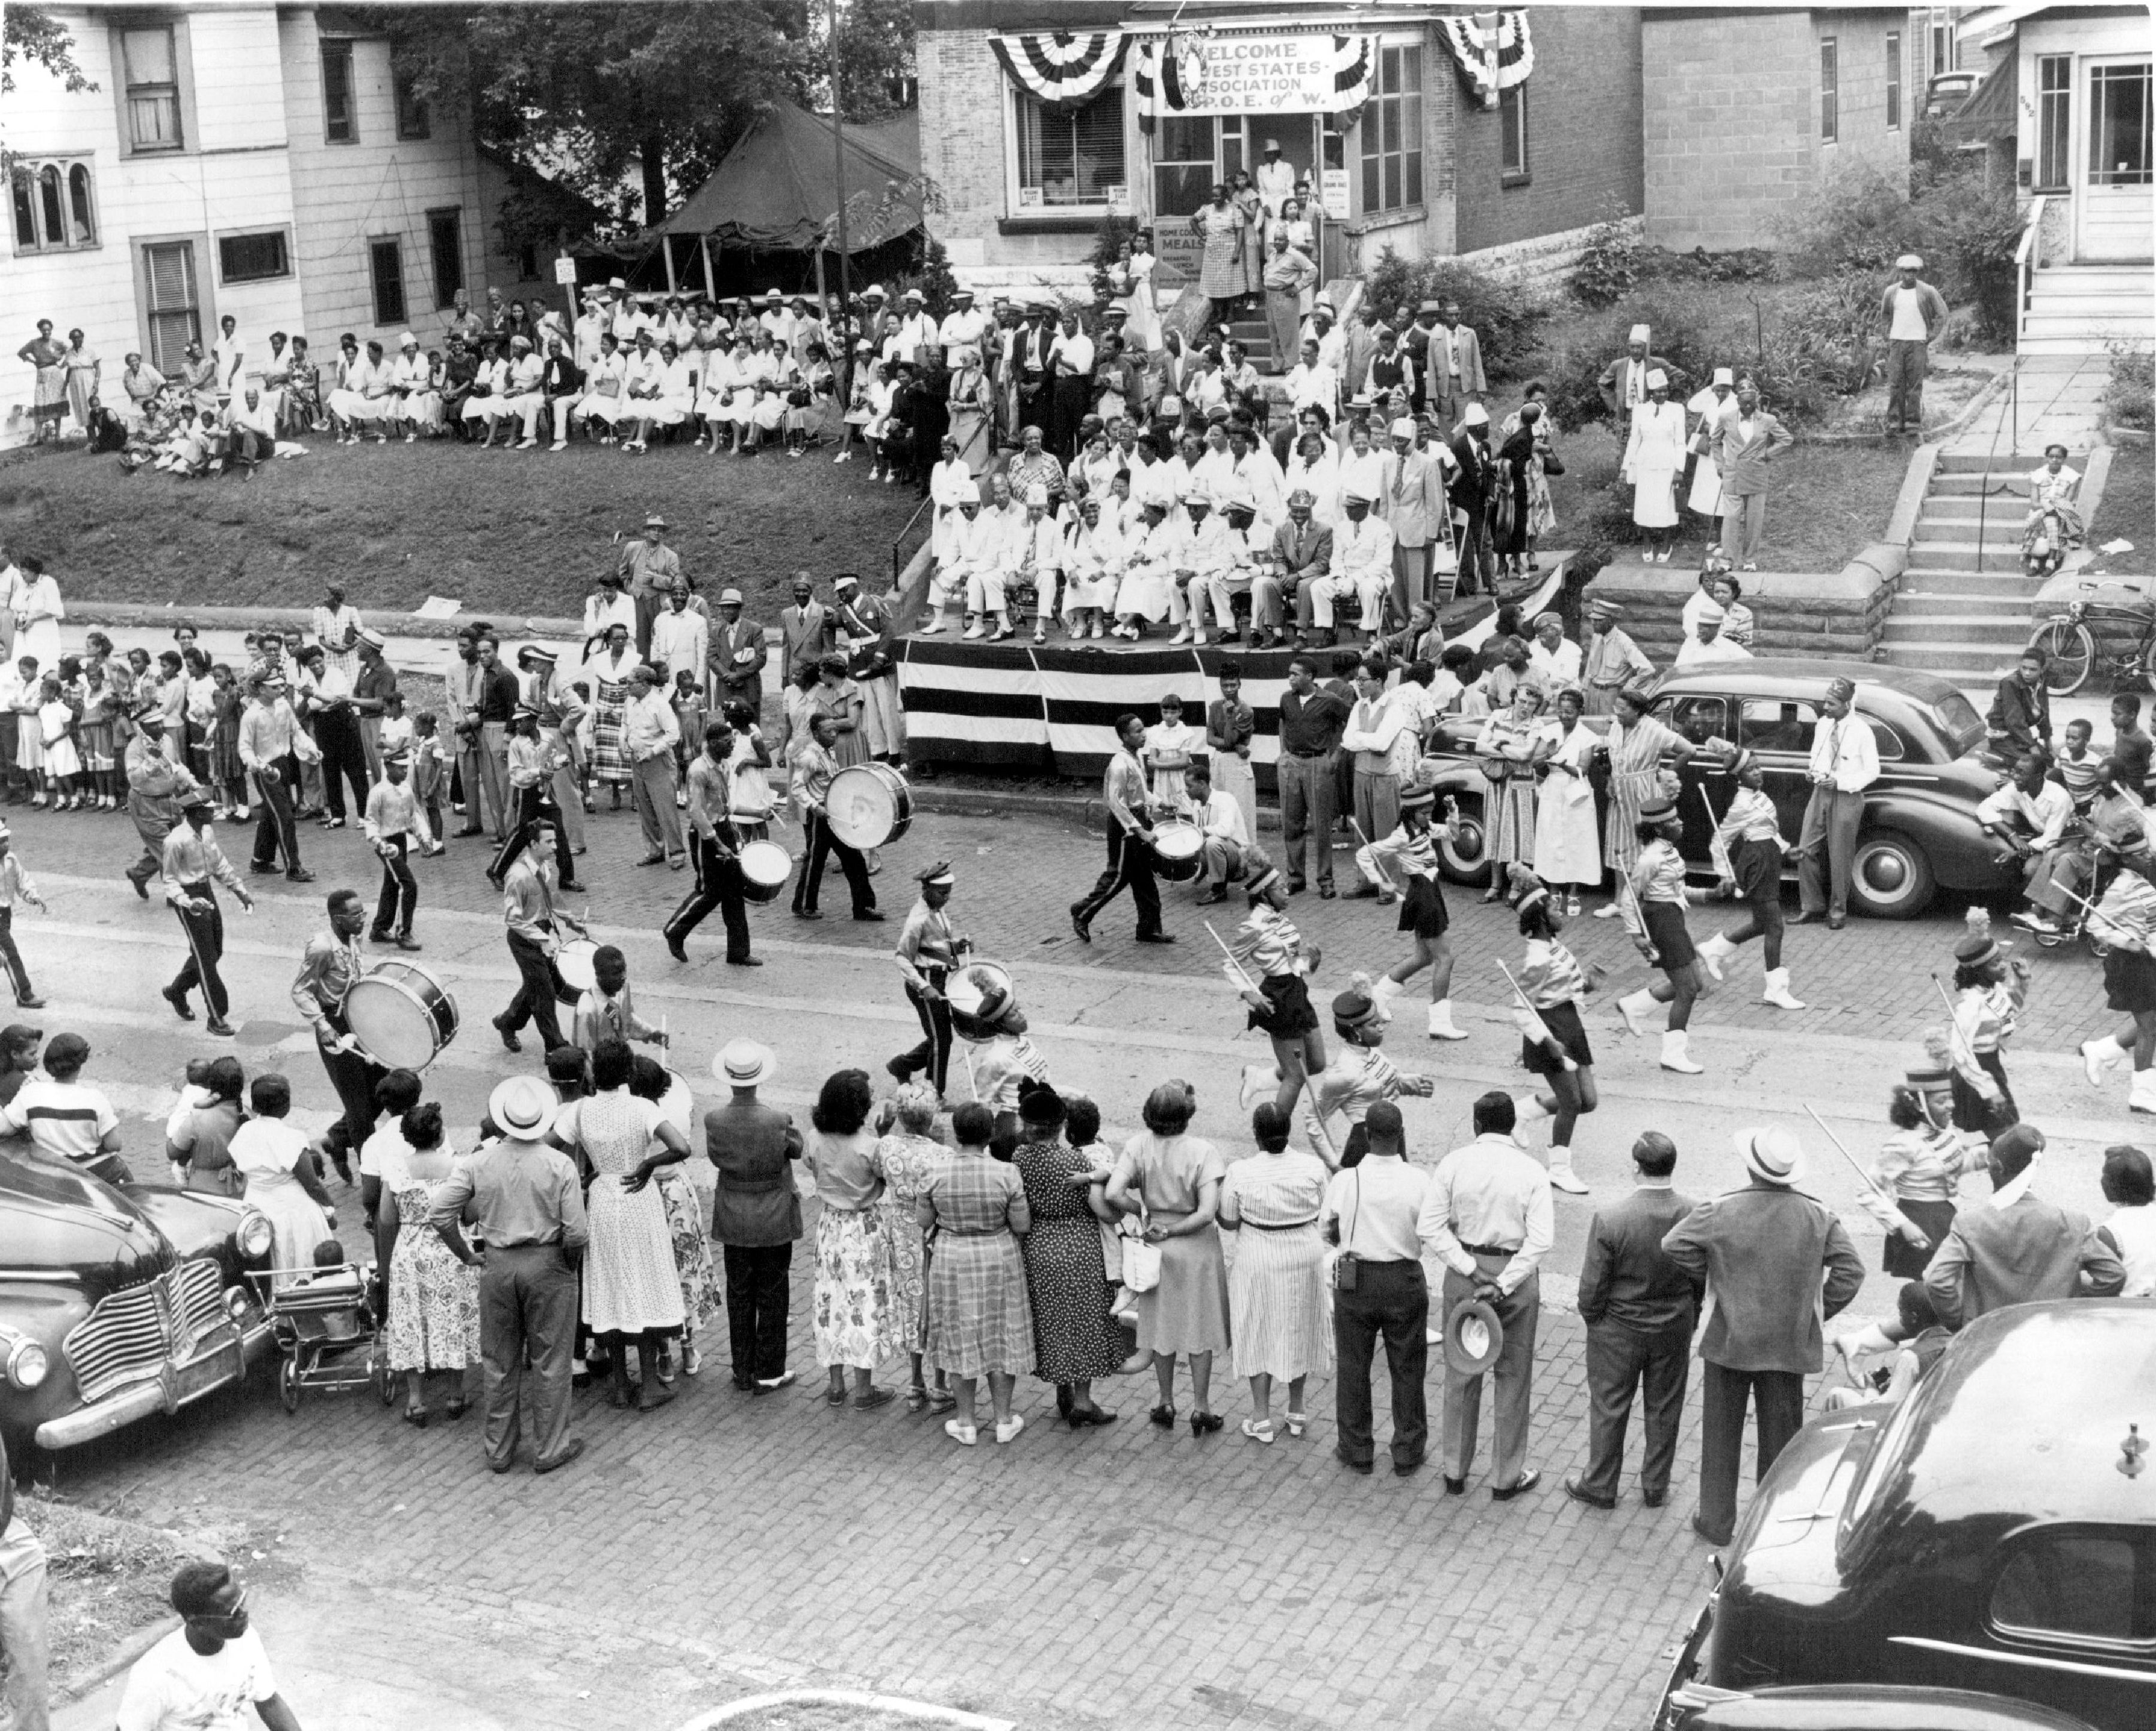 In July 1951, the Ralph Bates Marching Club from Omaha, Nebraska, passed the reviewing stand at 588 Rondo Ave. in St. Paul during a parade.